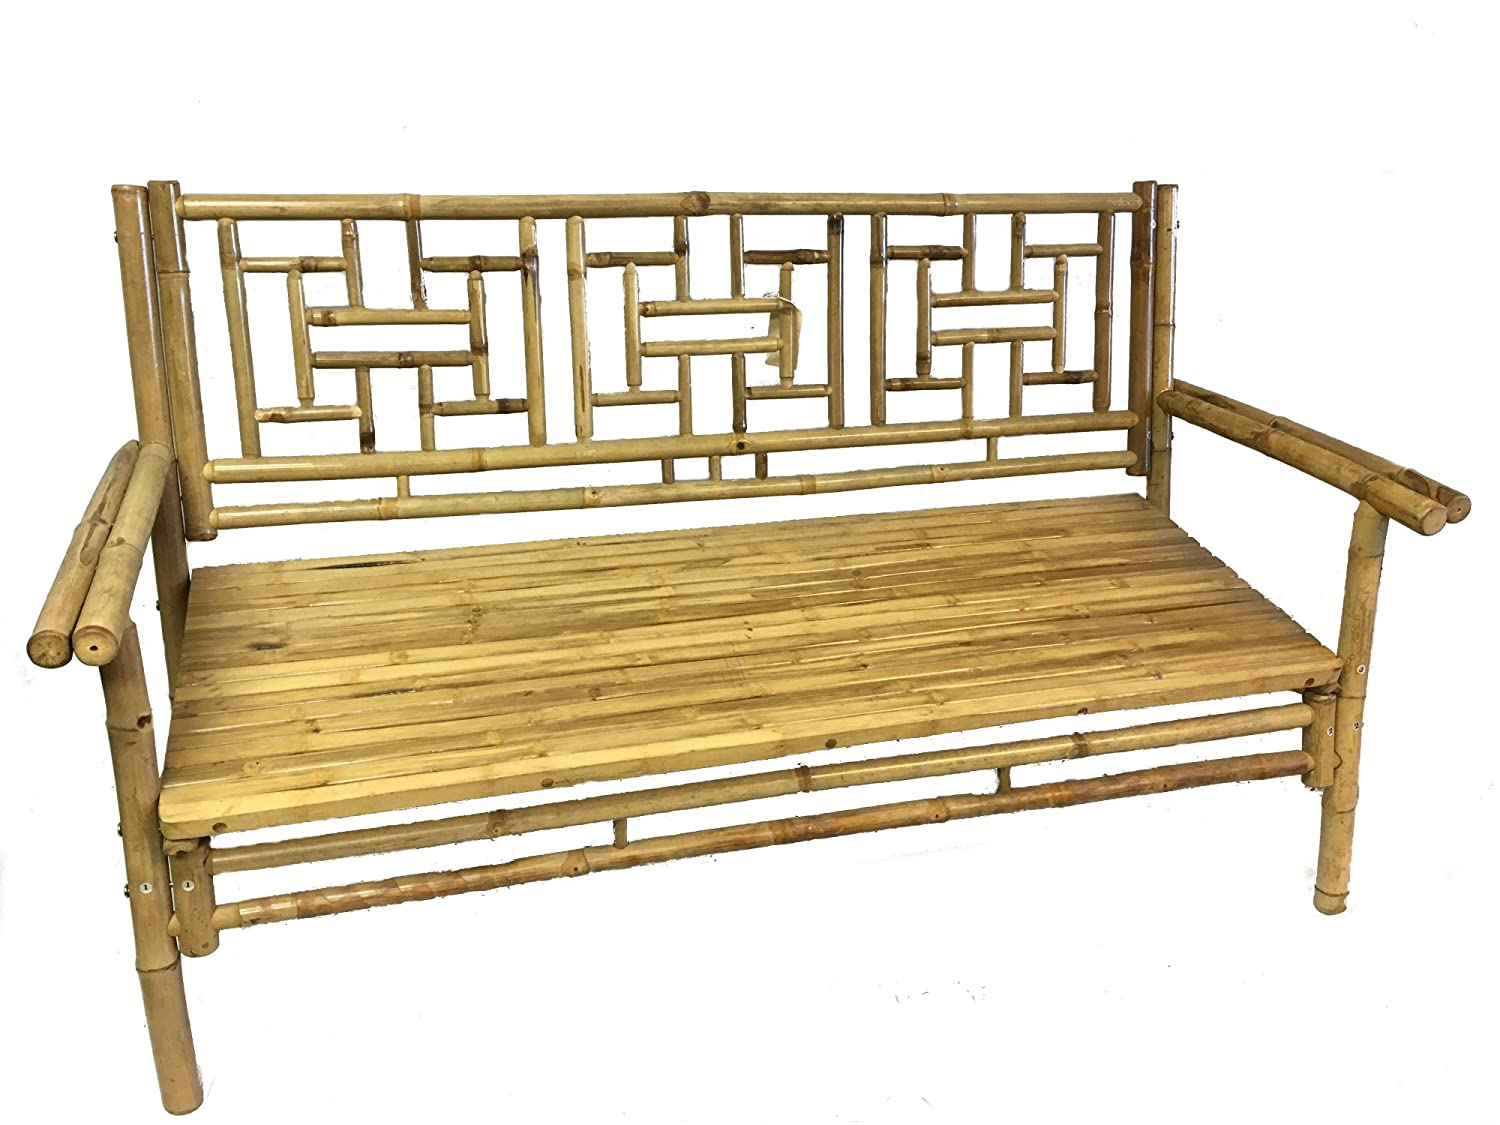 Fine Amazon Com Standard Natural Bamboo Bench With Grid Design Gmtry Best Dining Table And Chair Ideas Images Gmtryco